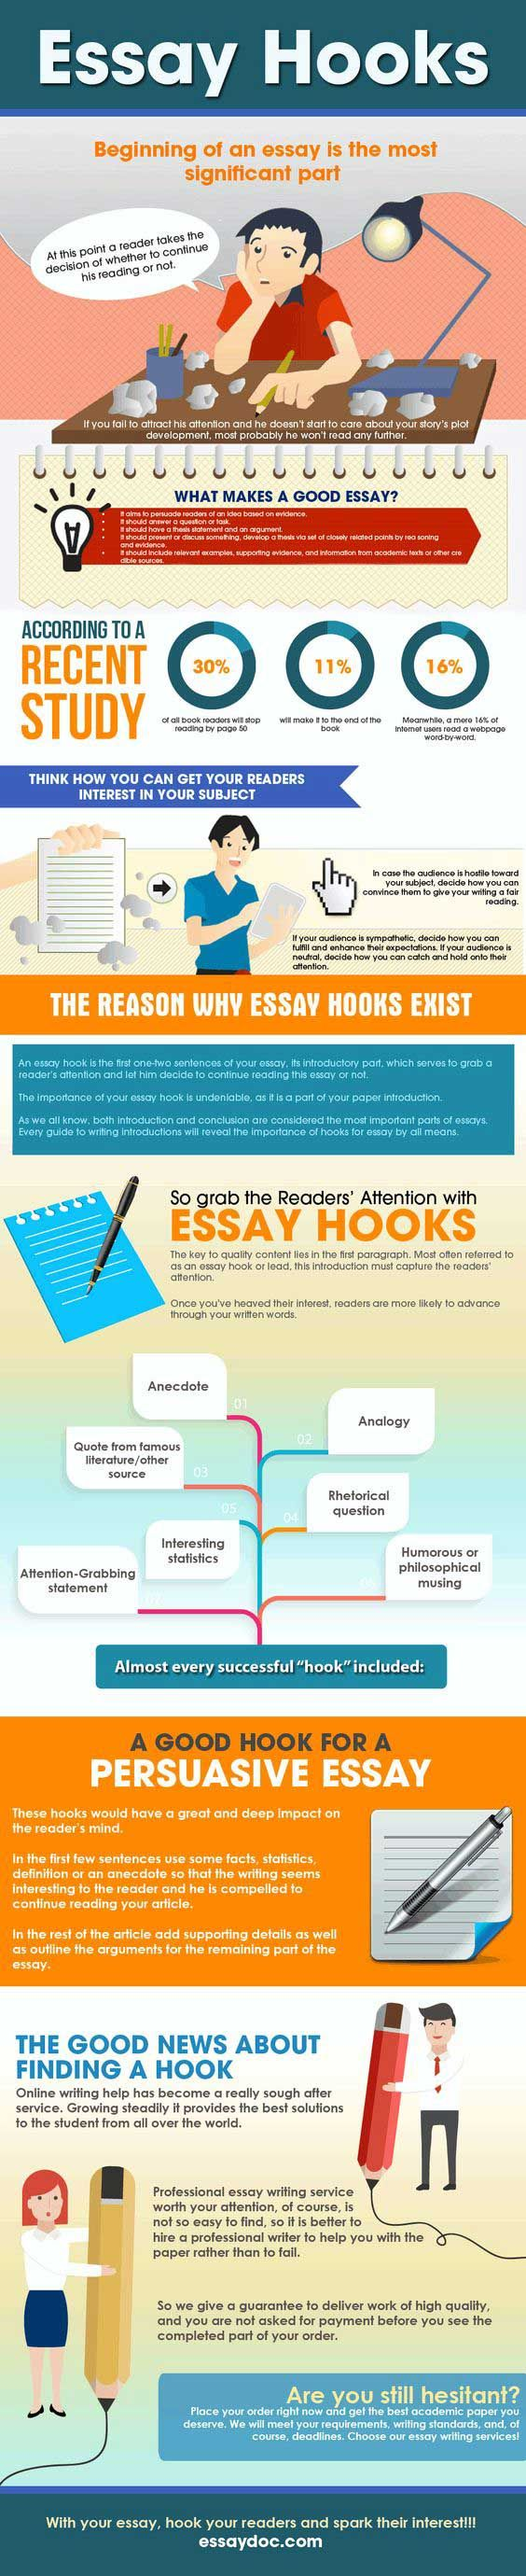 Writing the methodology section of a research paper  Effectively     Pew Internet Writing a Research Paper PORTFOLIO  Grades      EDITABLE   Writing process   Graphic organizers and Rubrics